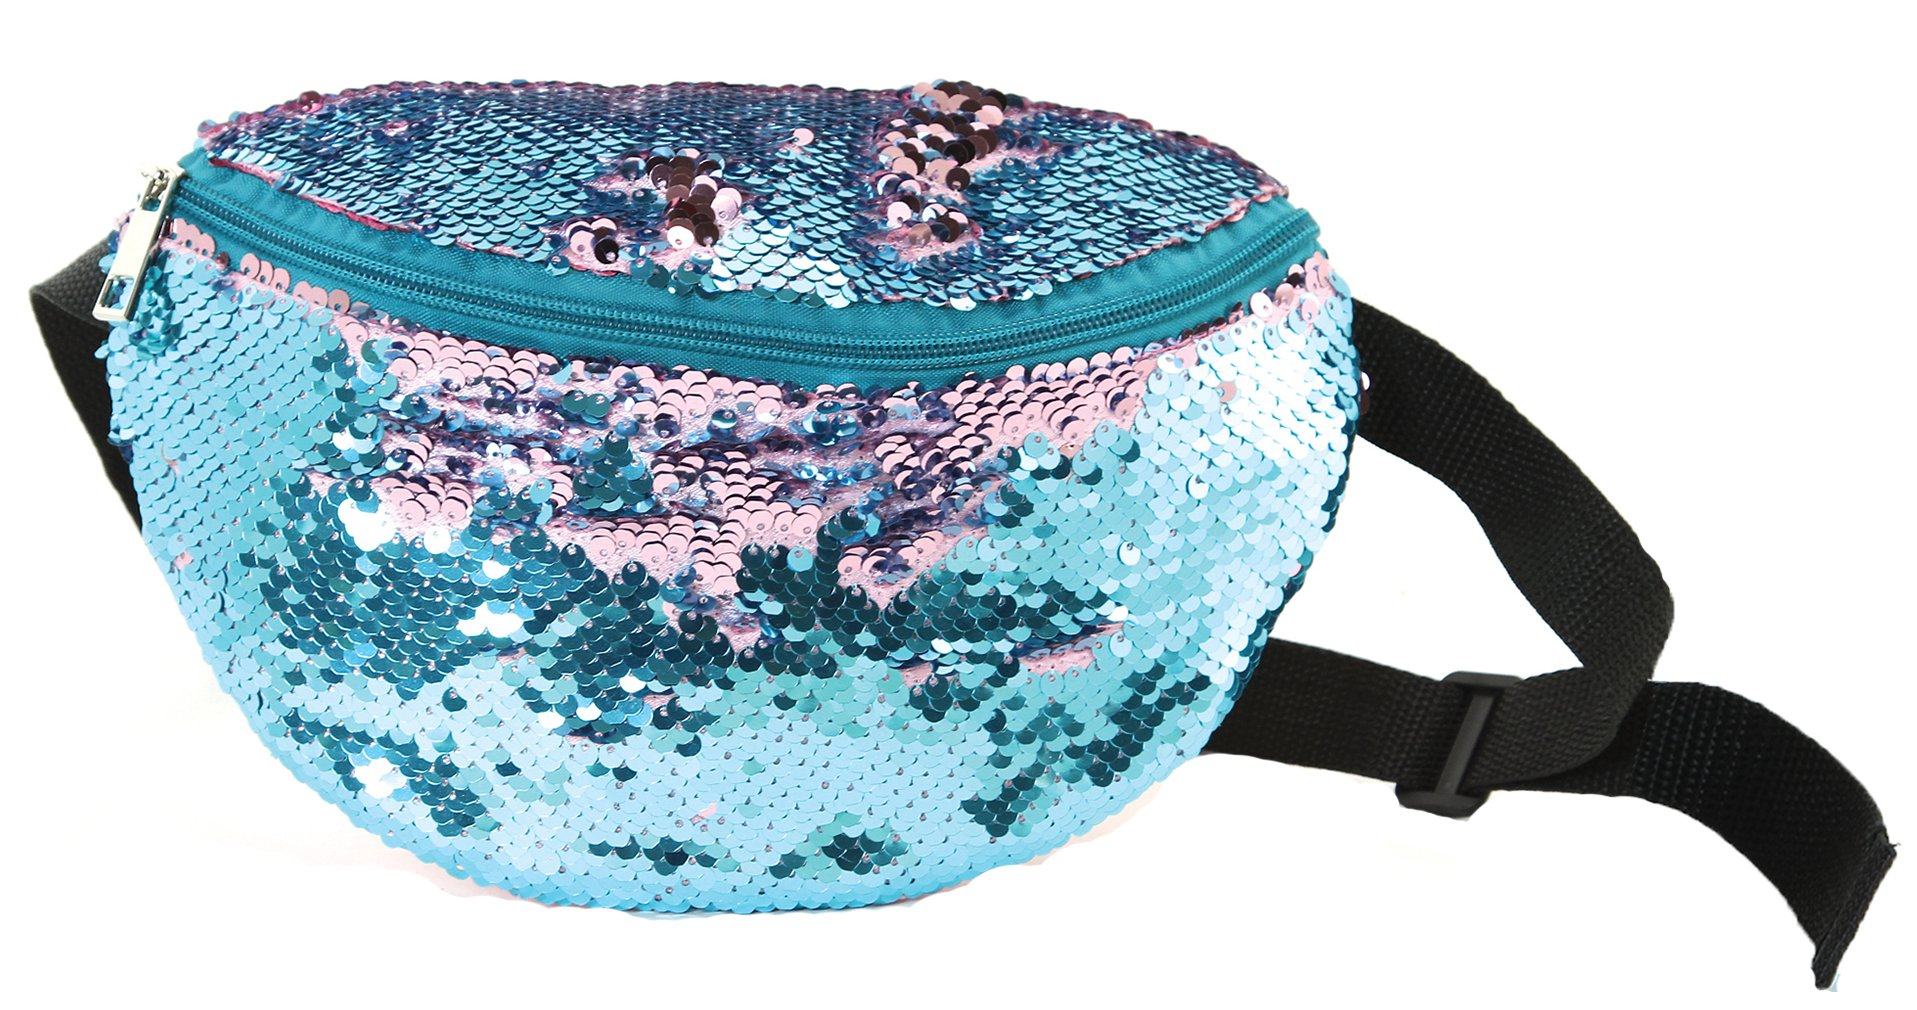 FP-100-MS-2911 Festival Fanny Pack - Sequin (Cotton Candy)